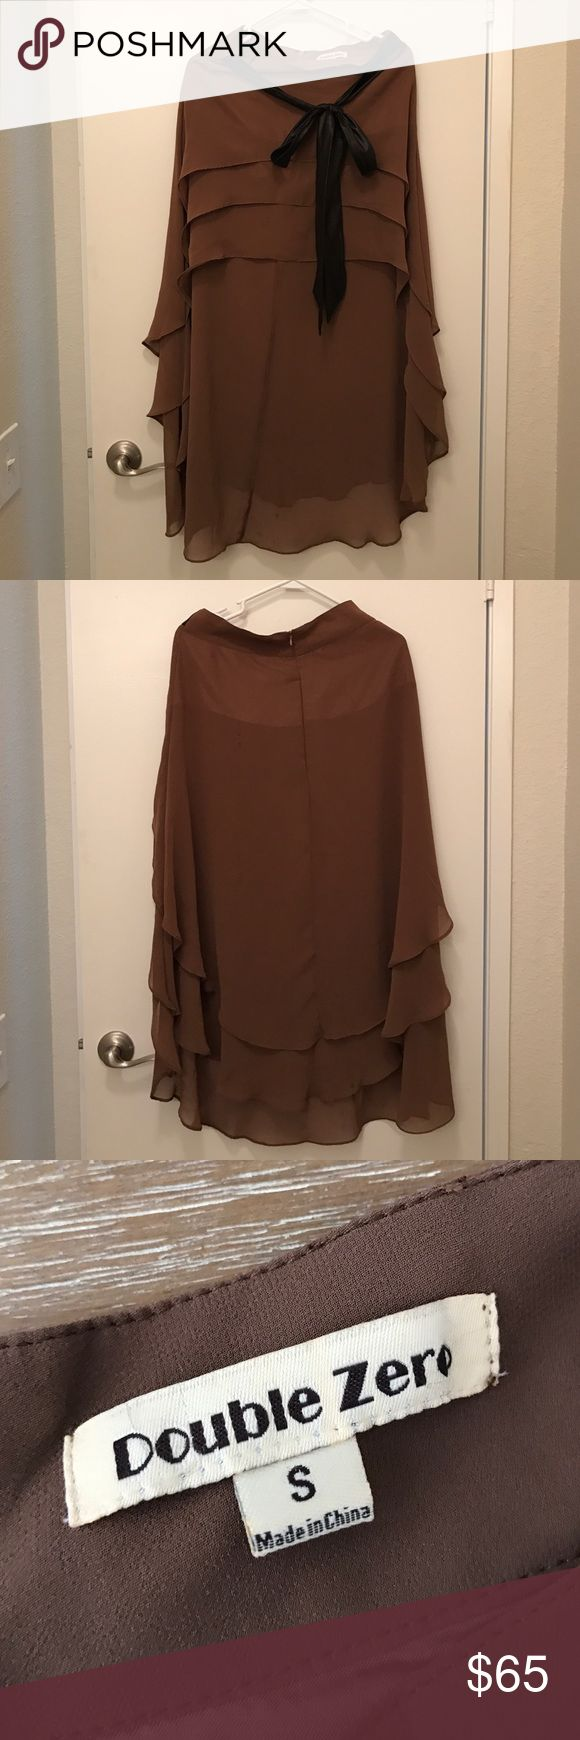 Brown Maxi Skirt Brown Maxi Skirt. Has a black tied up bow. Short in the front, long in the back. Size small. High waisted. Double Zero Skirts Maxi